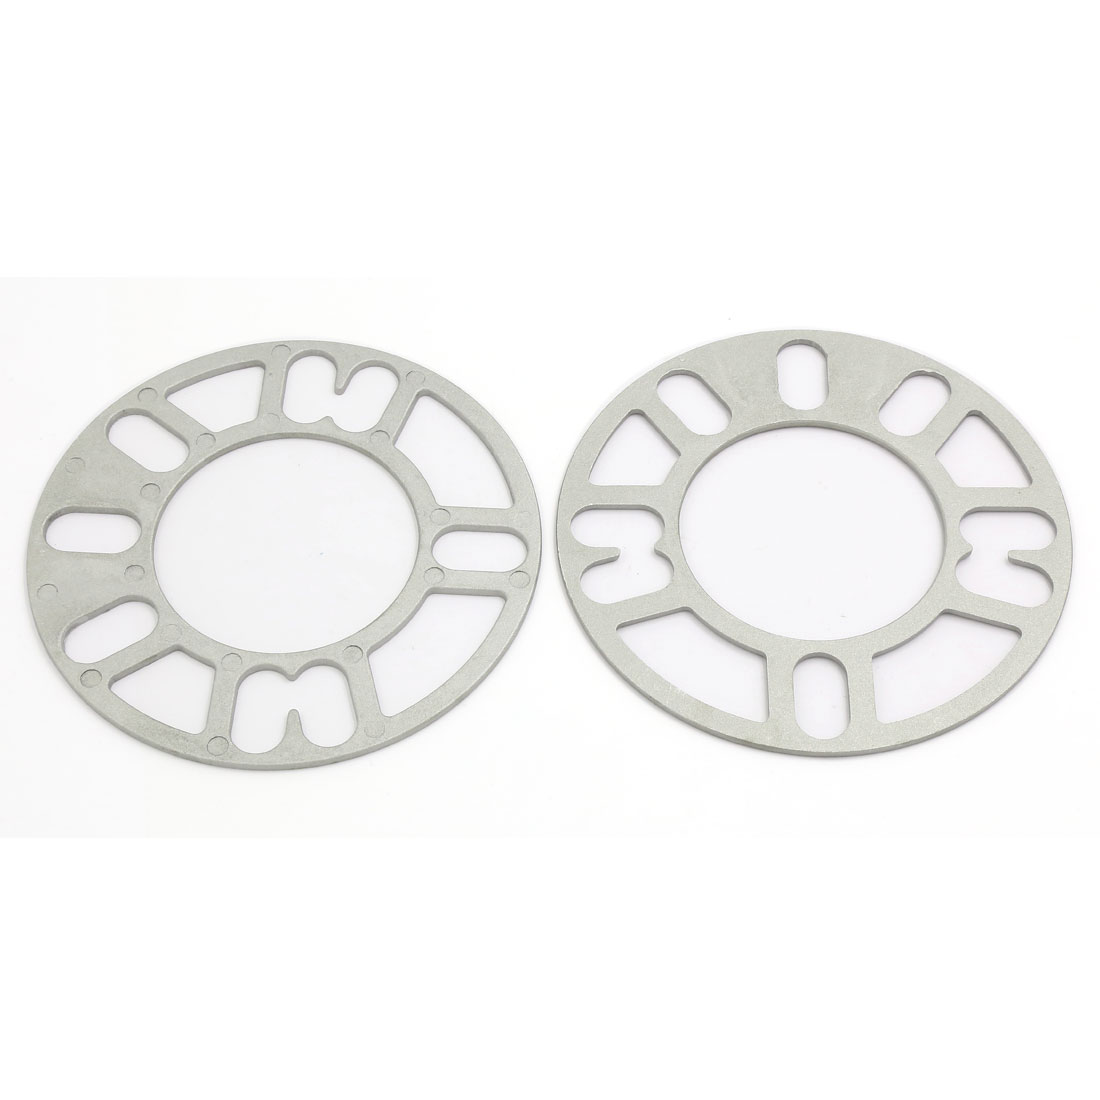 Universal 148mm Outer Dia 3mm Thickness Wheel Spacer Gasket 2 Pcs for Car Auto